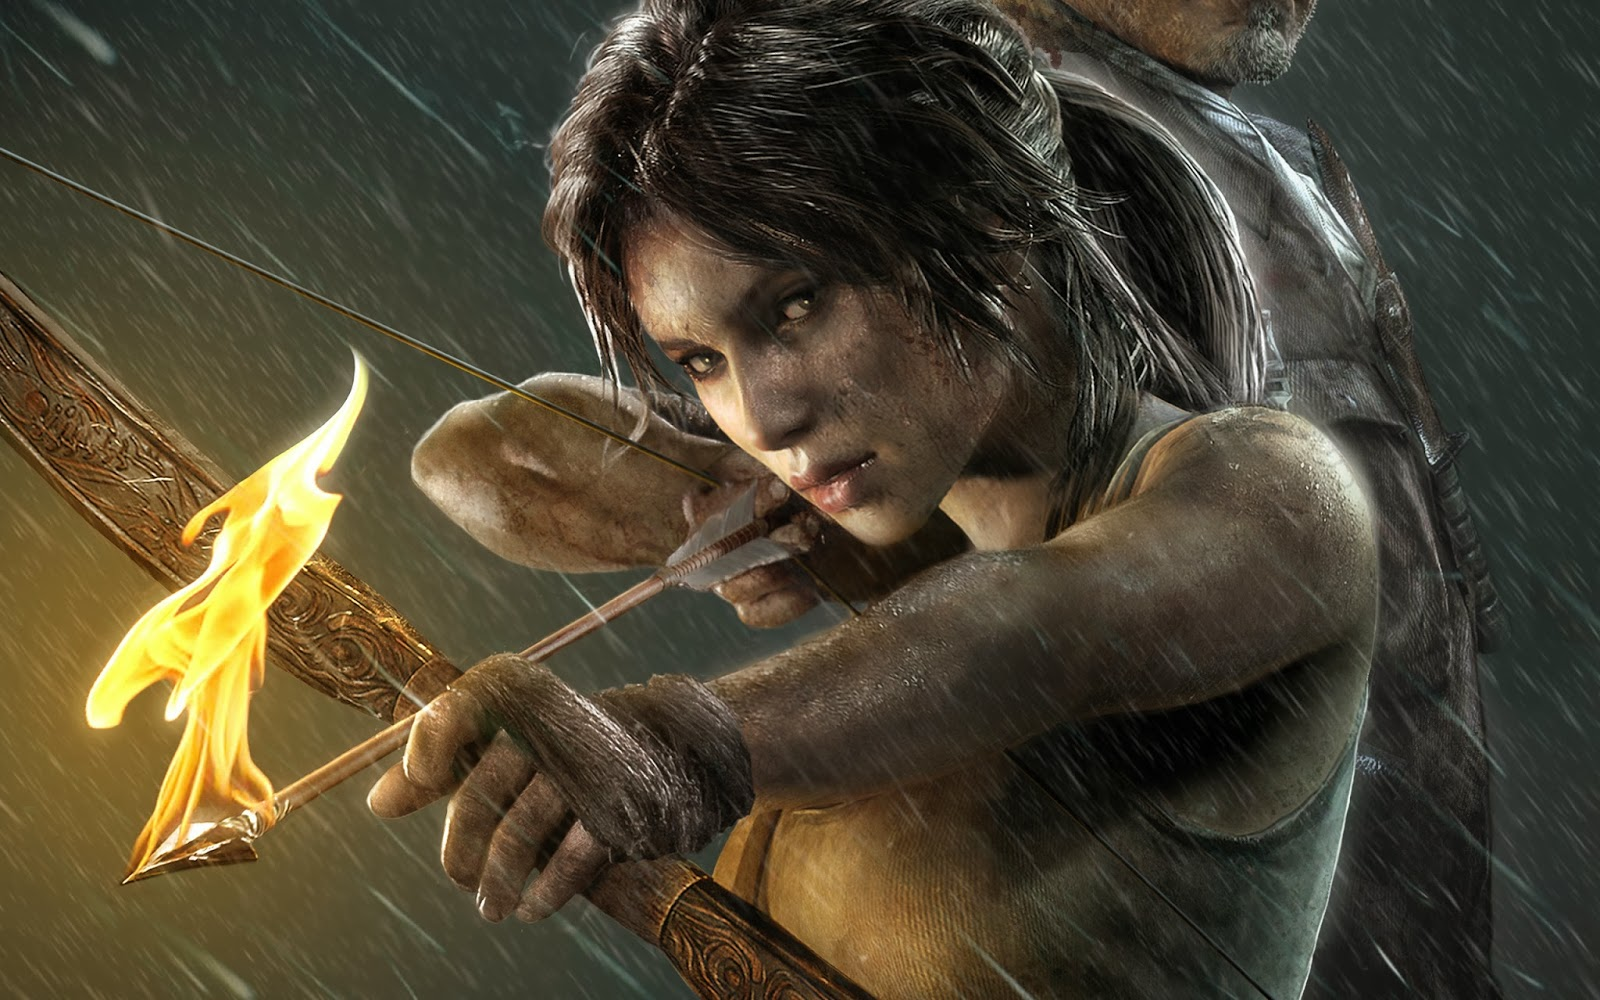 Tomb Raider 2013 Wallpaper: Revanth Filbert Raj (filly